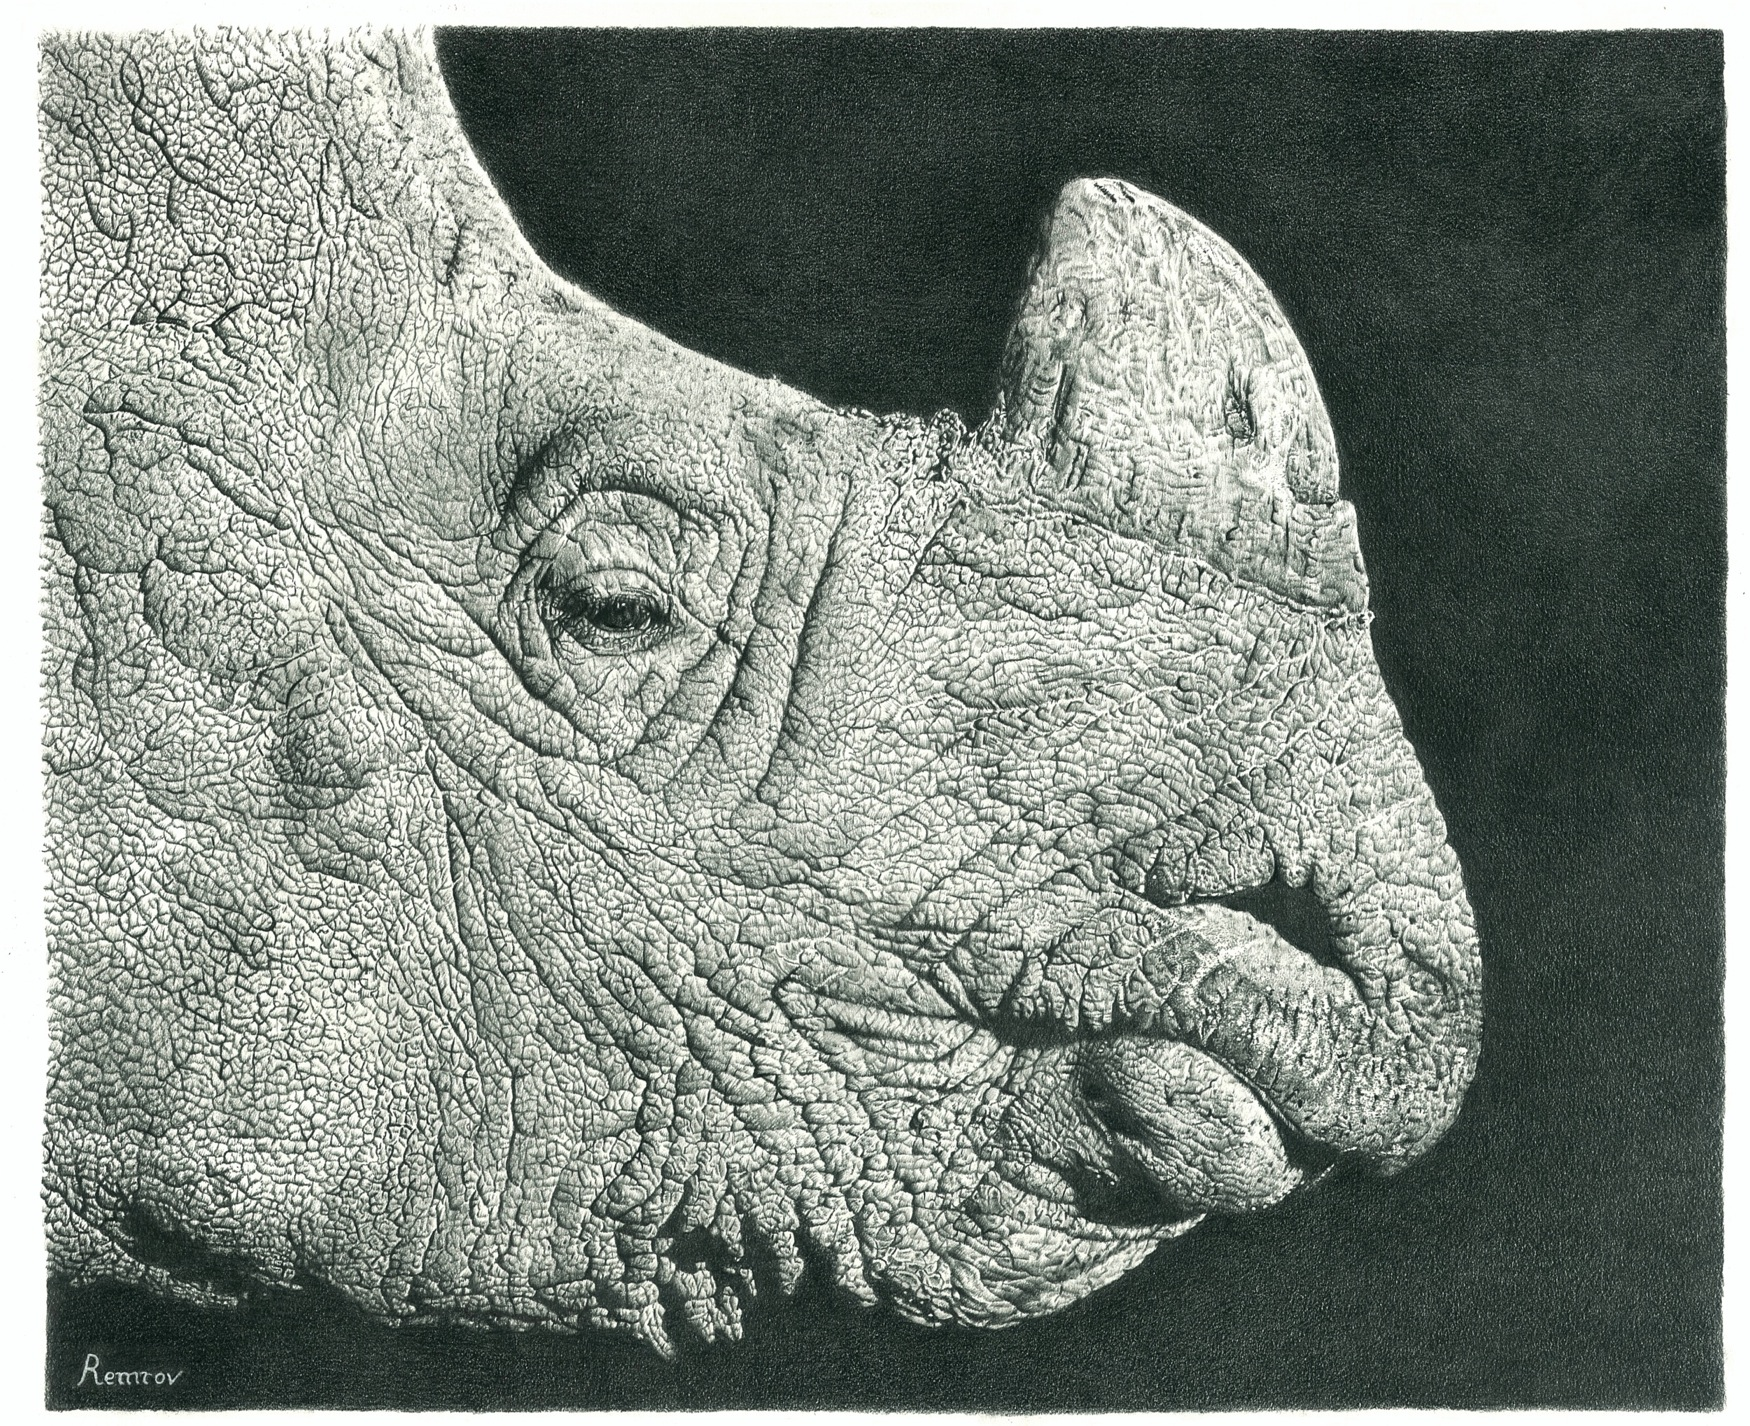 Rhino Pencil Drawing by Remrov